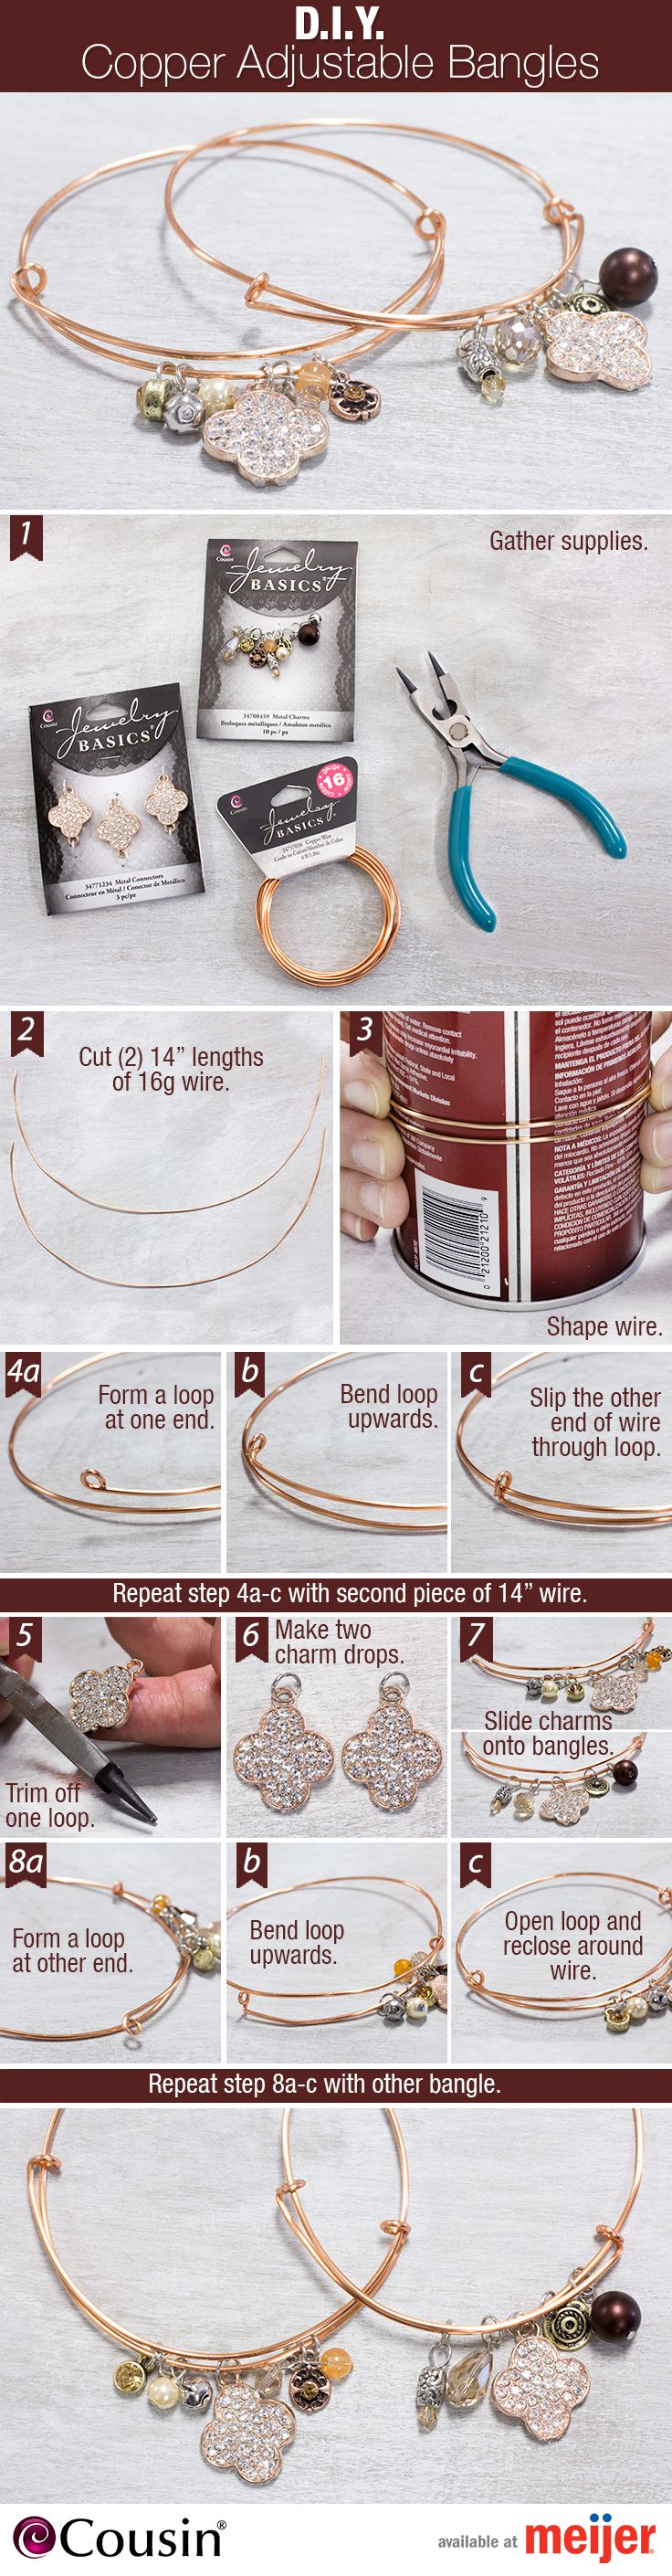 Get crafty and make these simple DIY bangles as a way to celebrate #NationalCraftMonth. Perfect to give as gifts or keep for yourself!